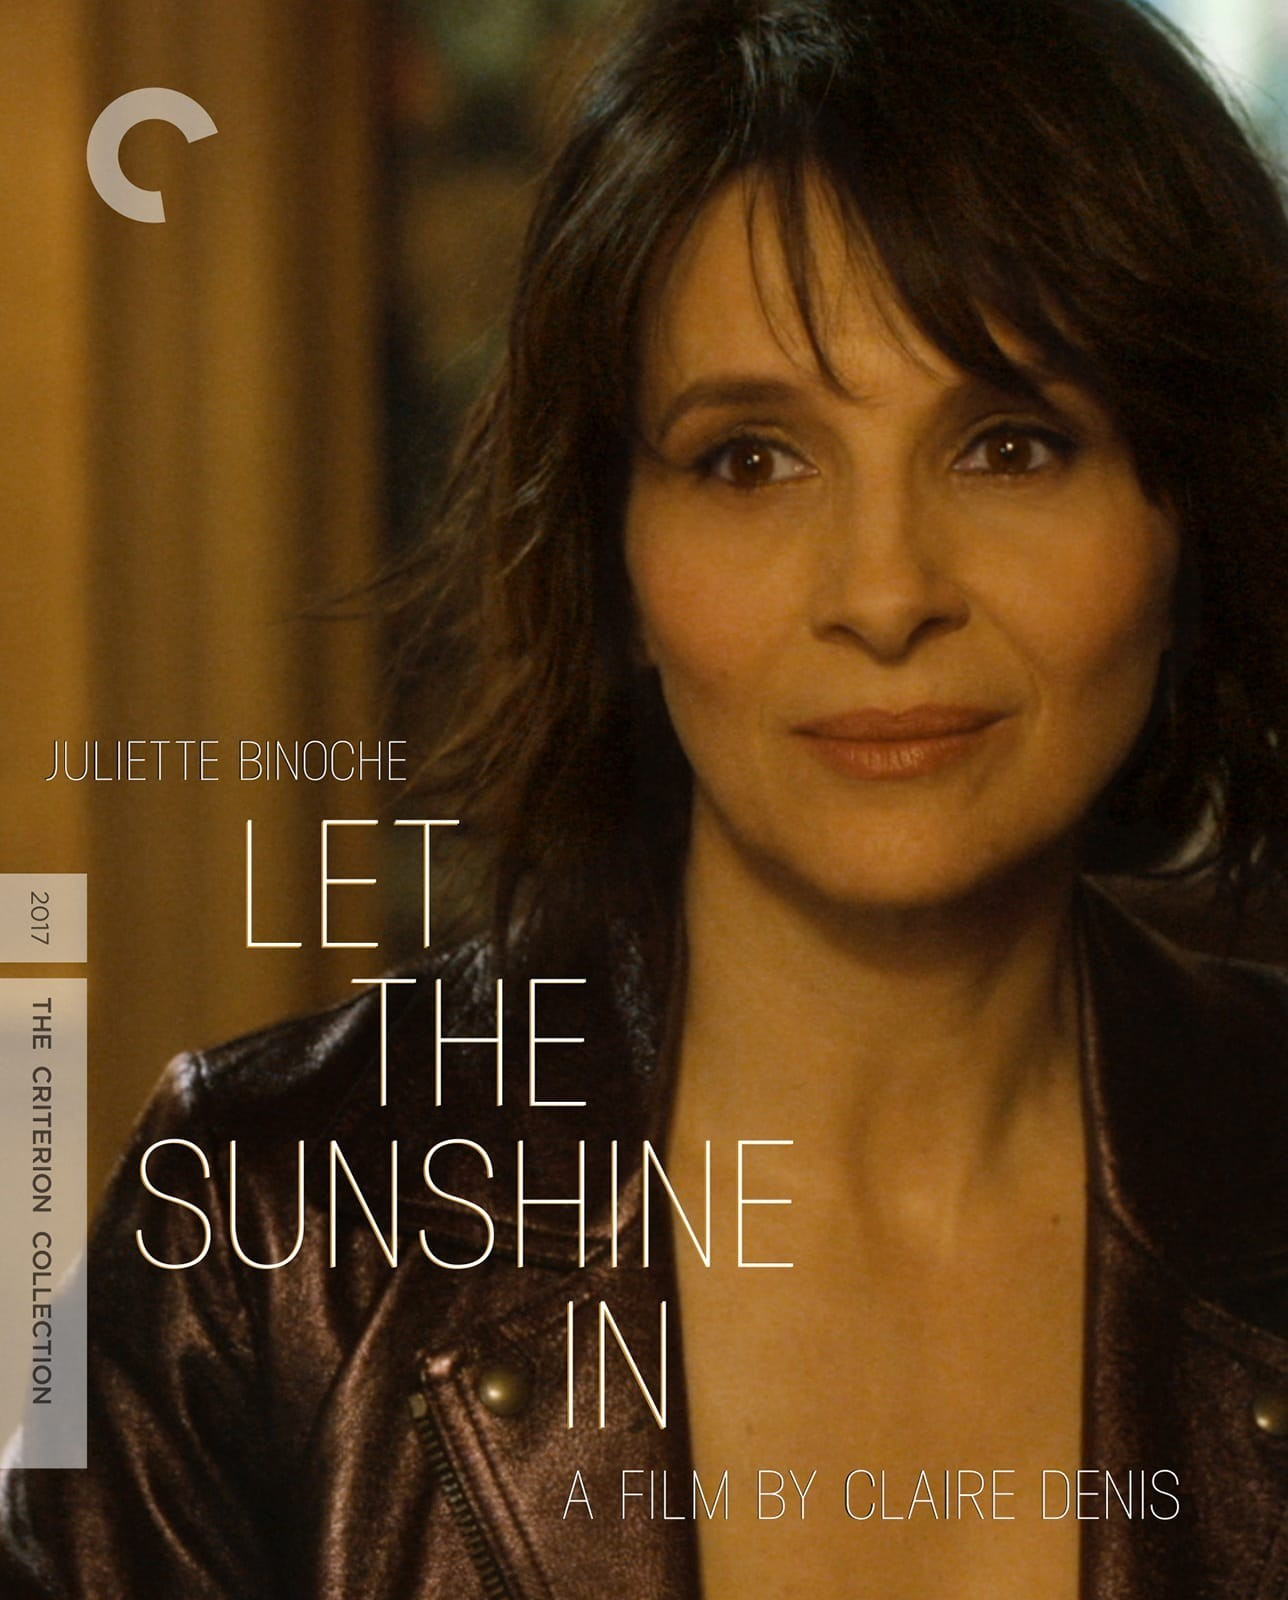 Let the Sunshine In (The Criterion Collection)(Blu-ray)(Region A)(Pre-order / May 21)